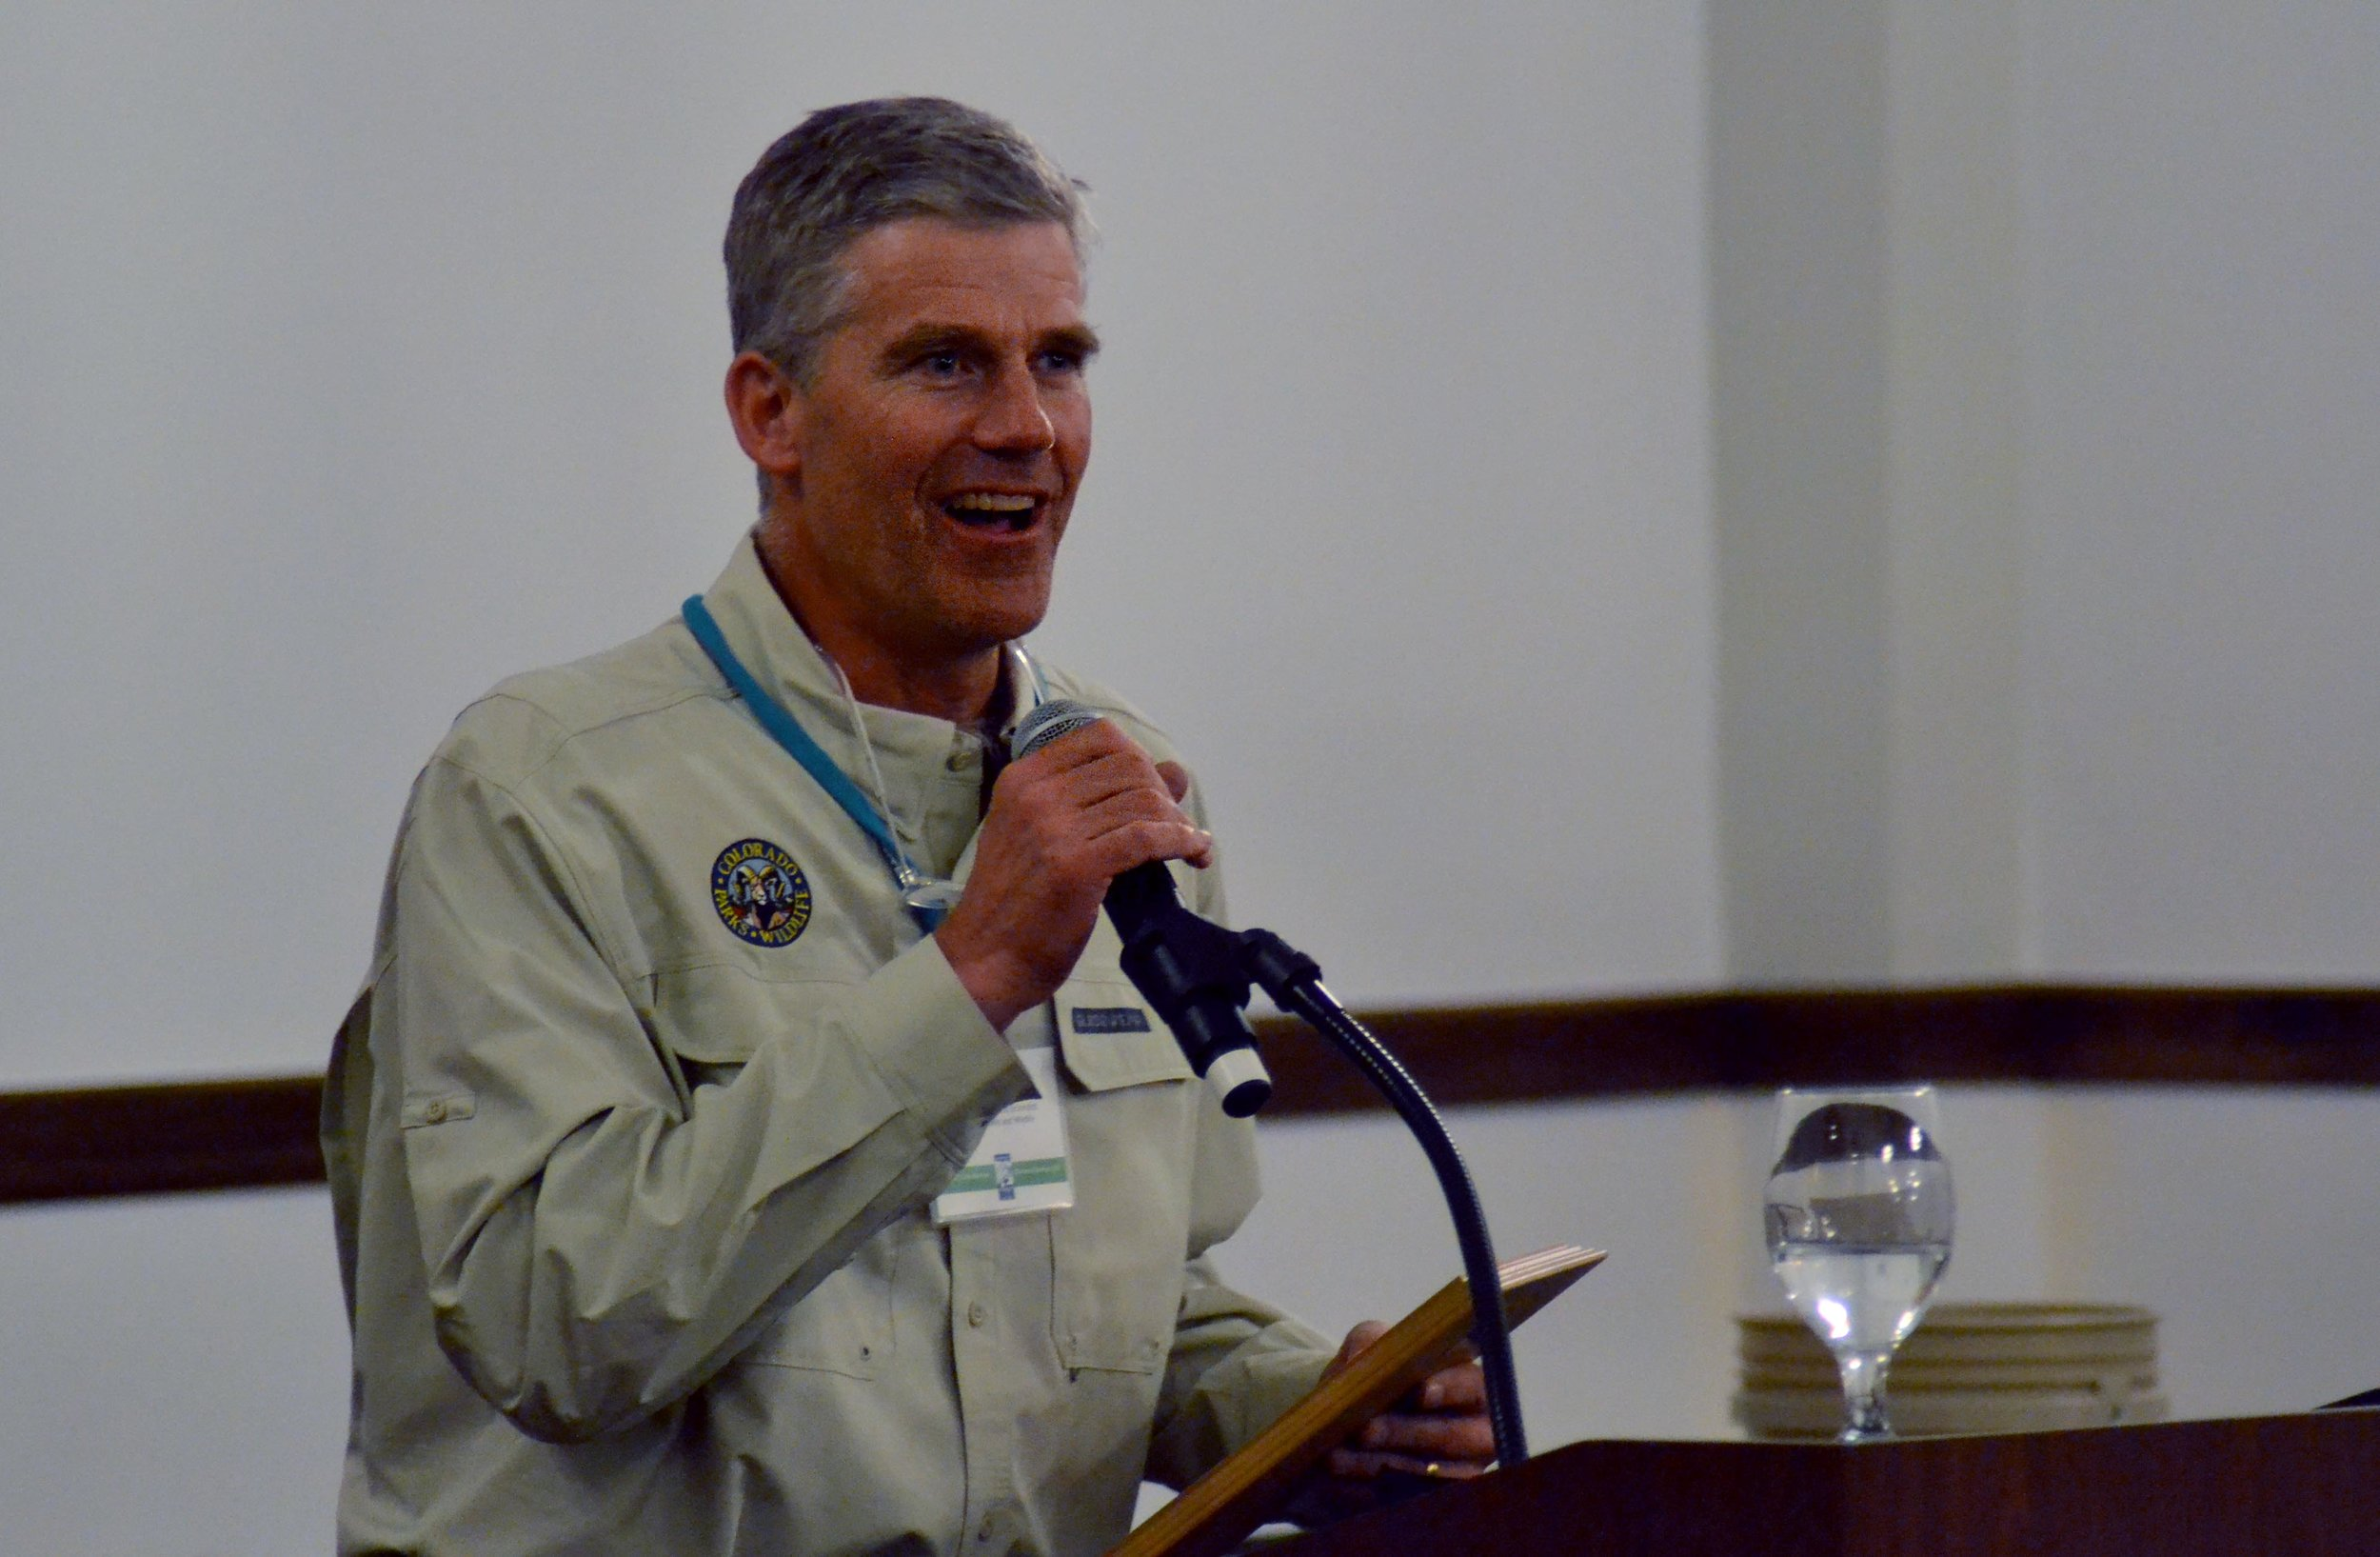 Pictured: Awardee Kevin Rogers, Colorado Parks and Wildlife biologist and researcher.